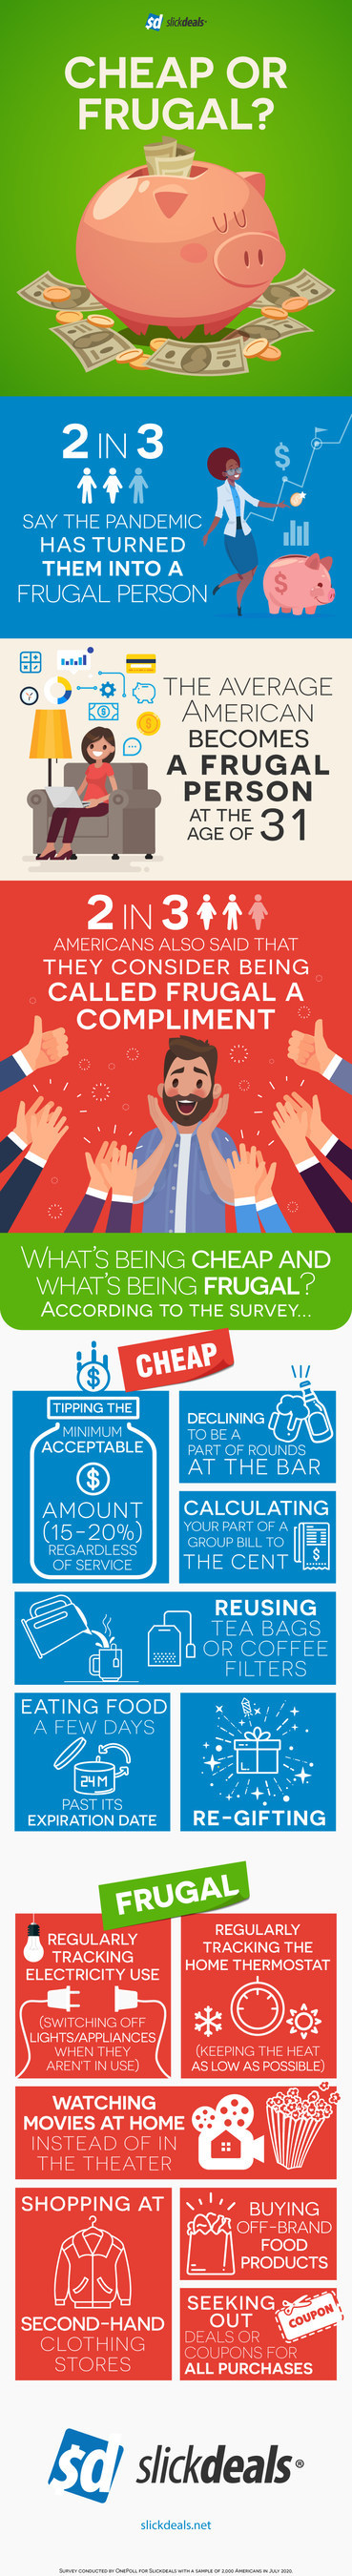 Are you cheap or frugal?